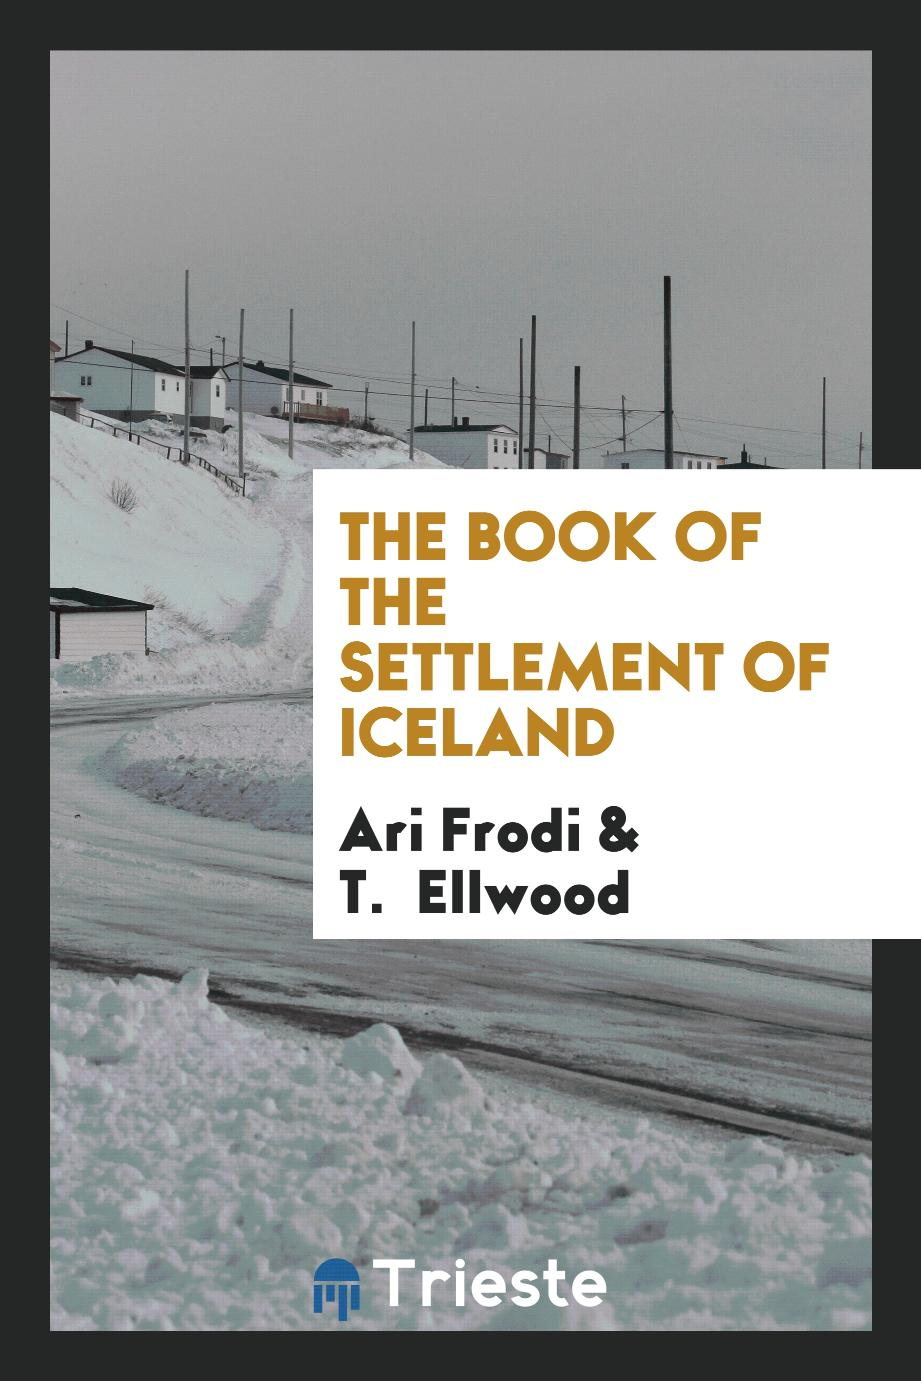 The Book of the Settlement of Iceland